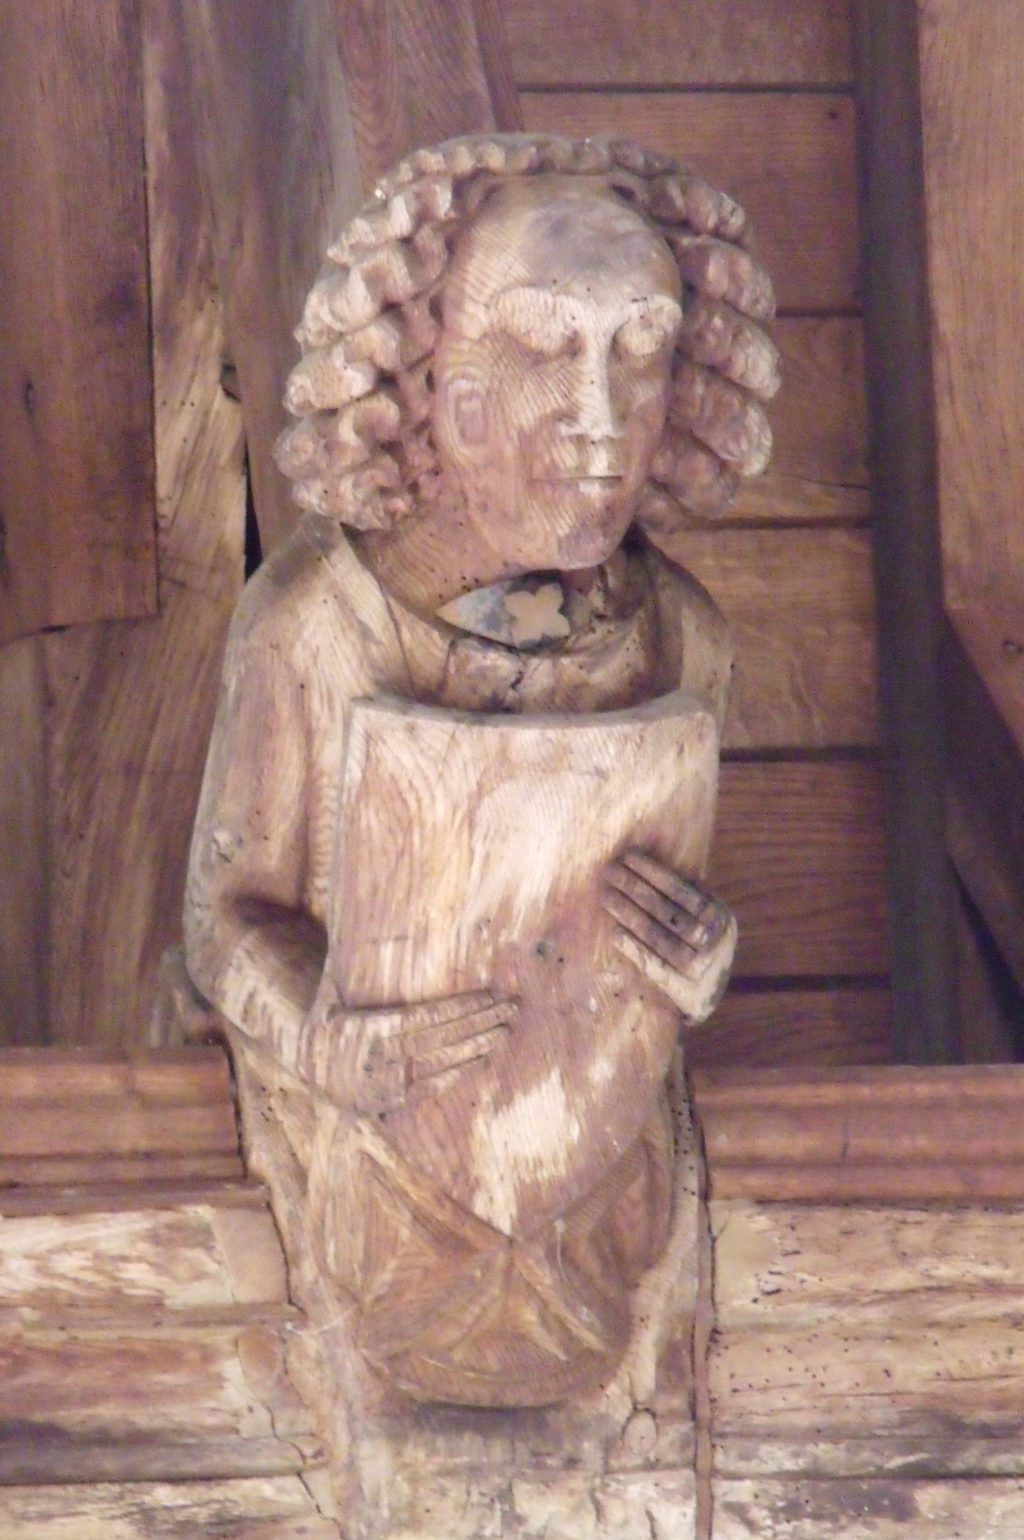 Look! Here's a small angel perched in the roof at Wingfield. He once would have been vividly coloured.